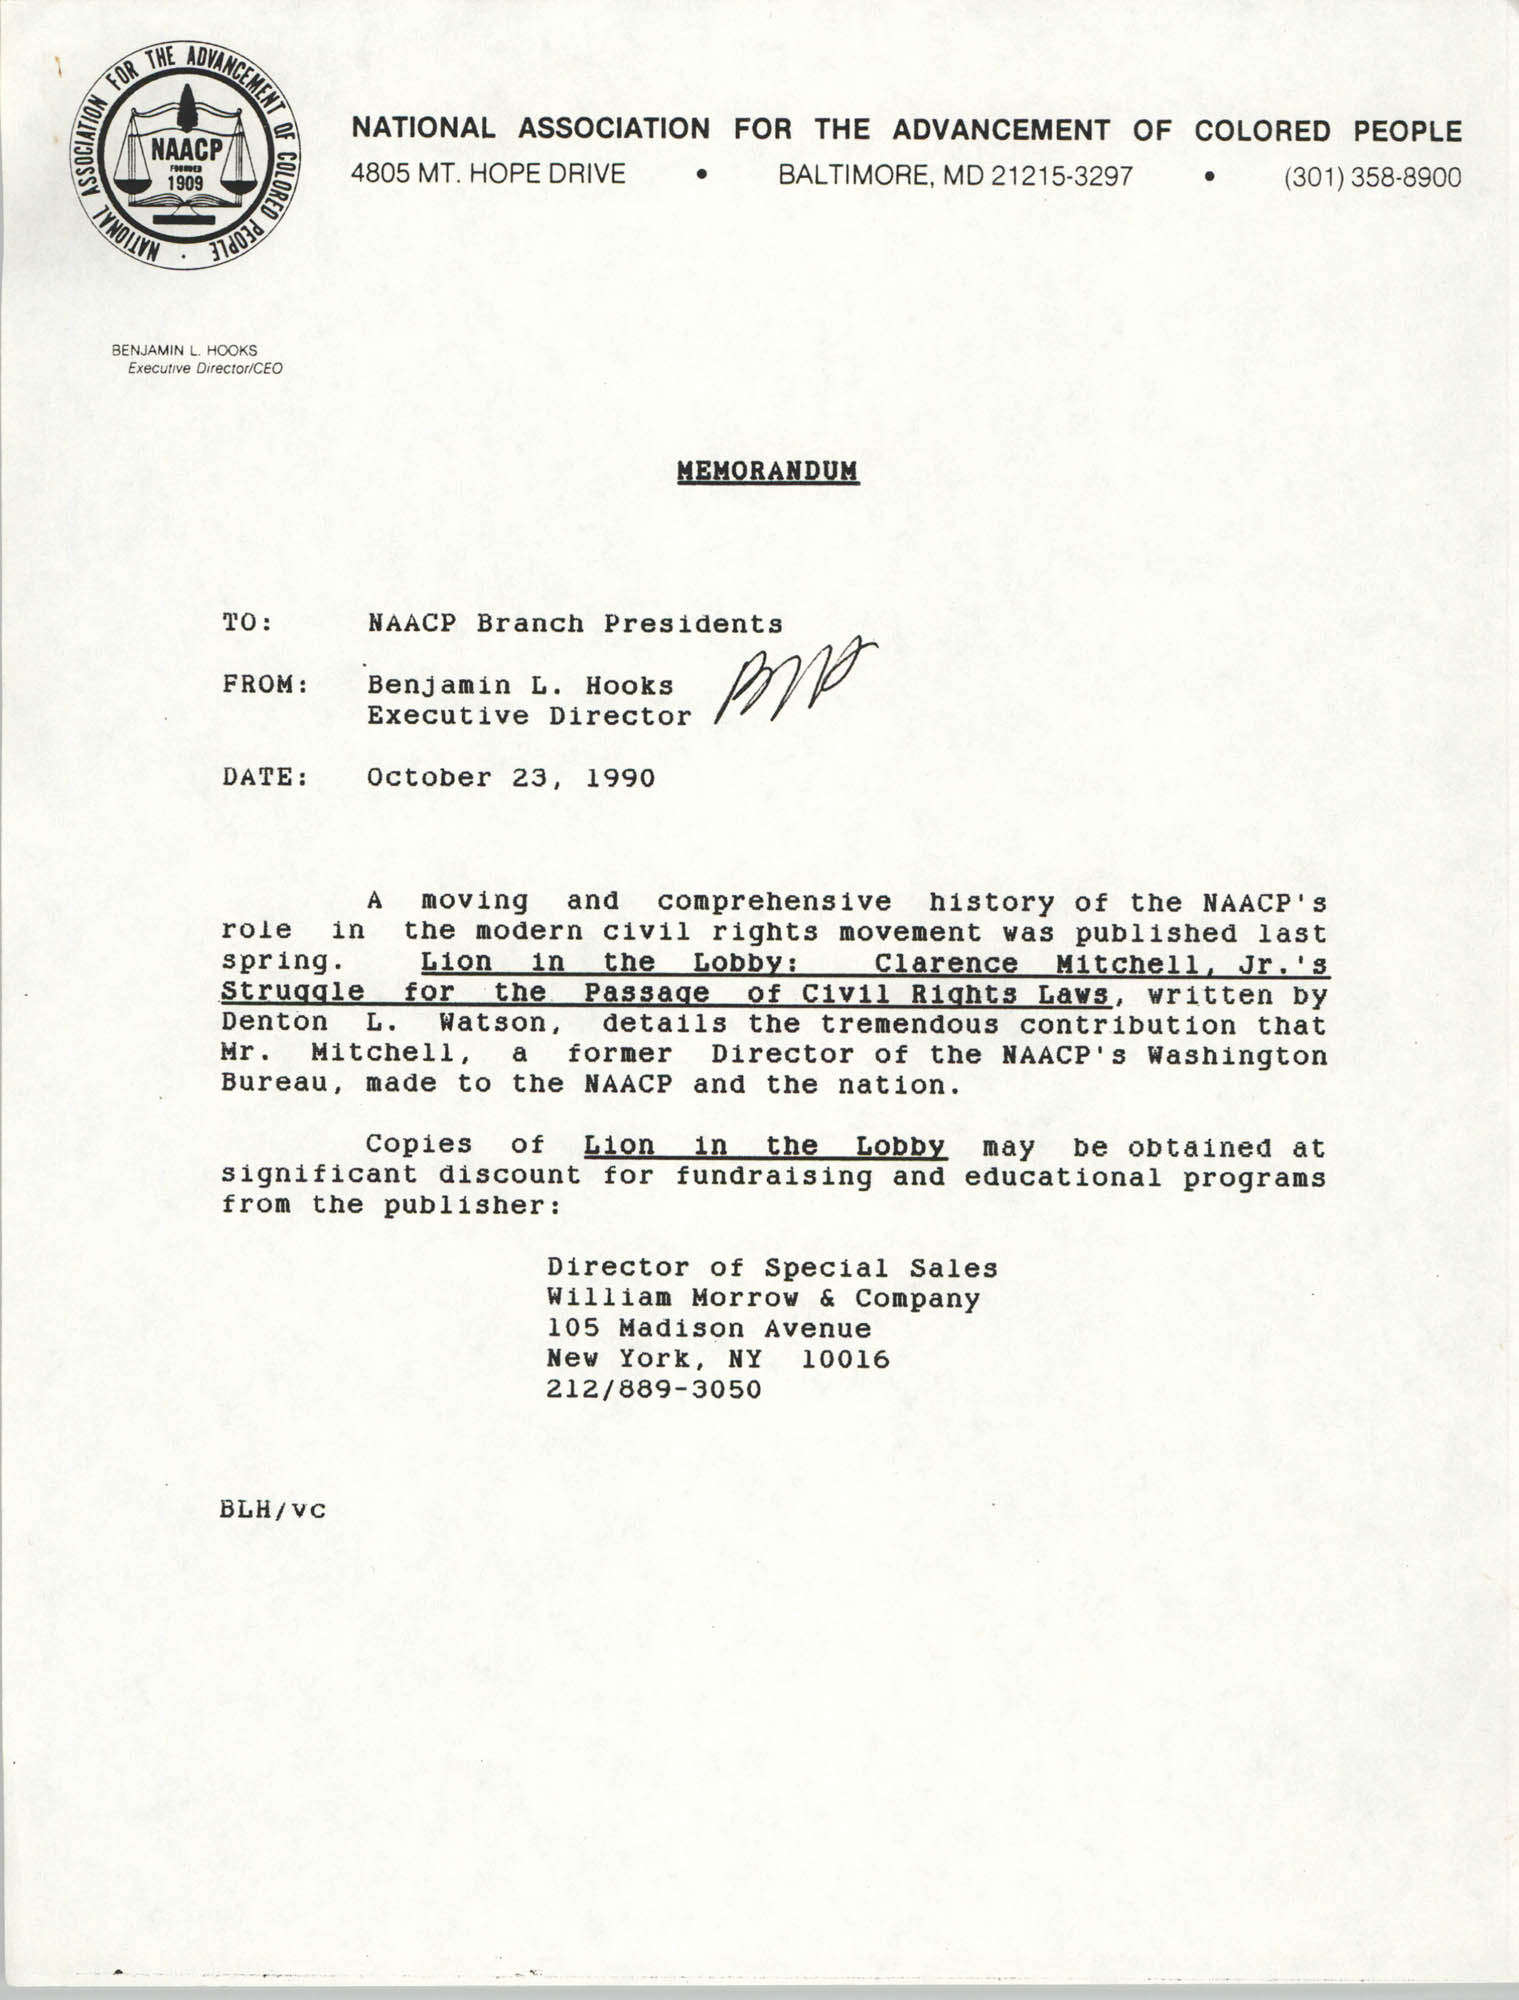 NAACP Memorandum, October 23, 1990